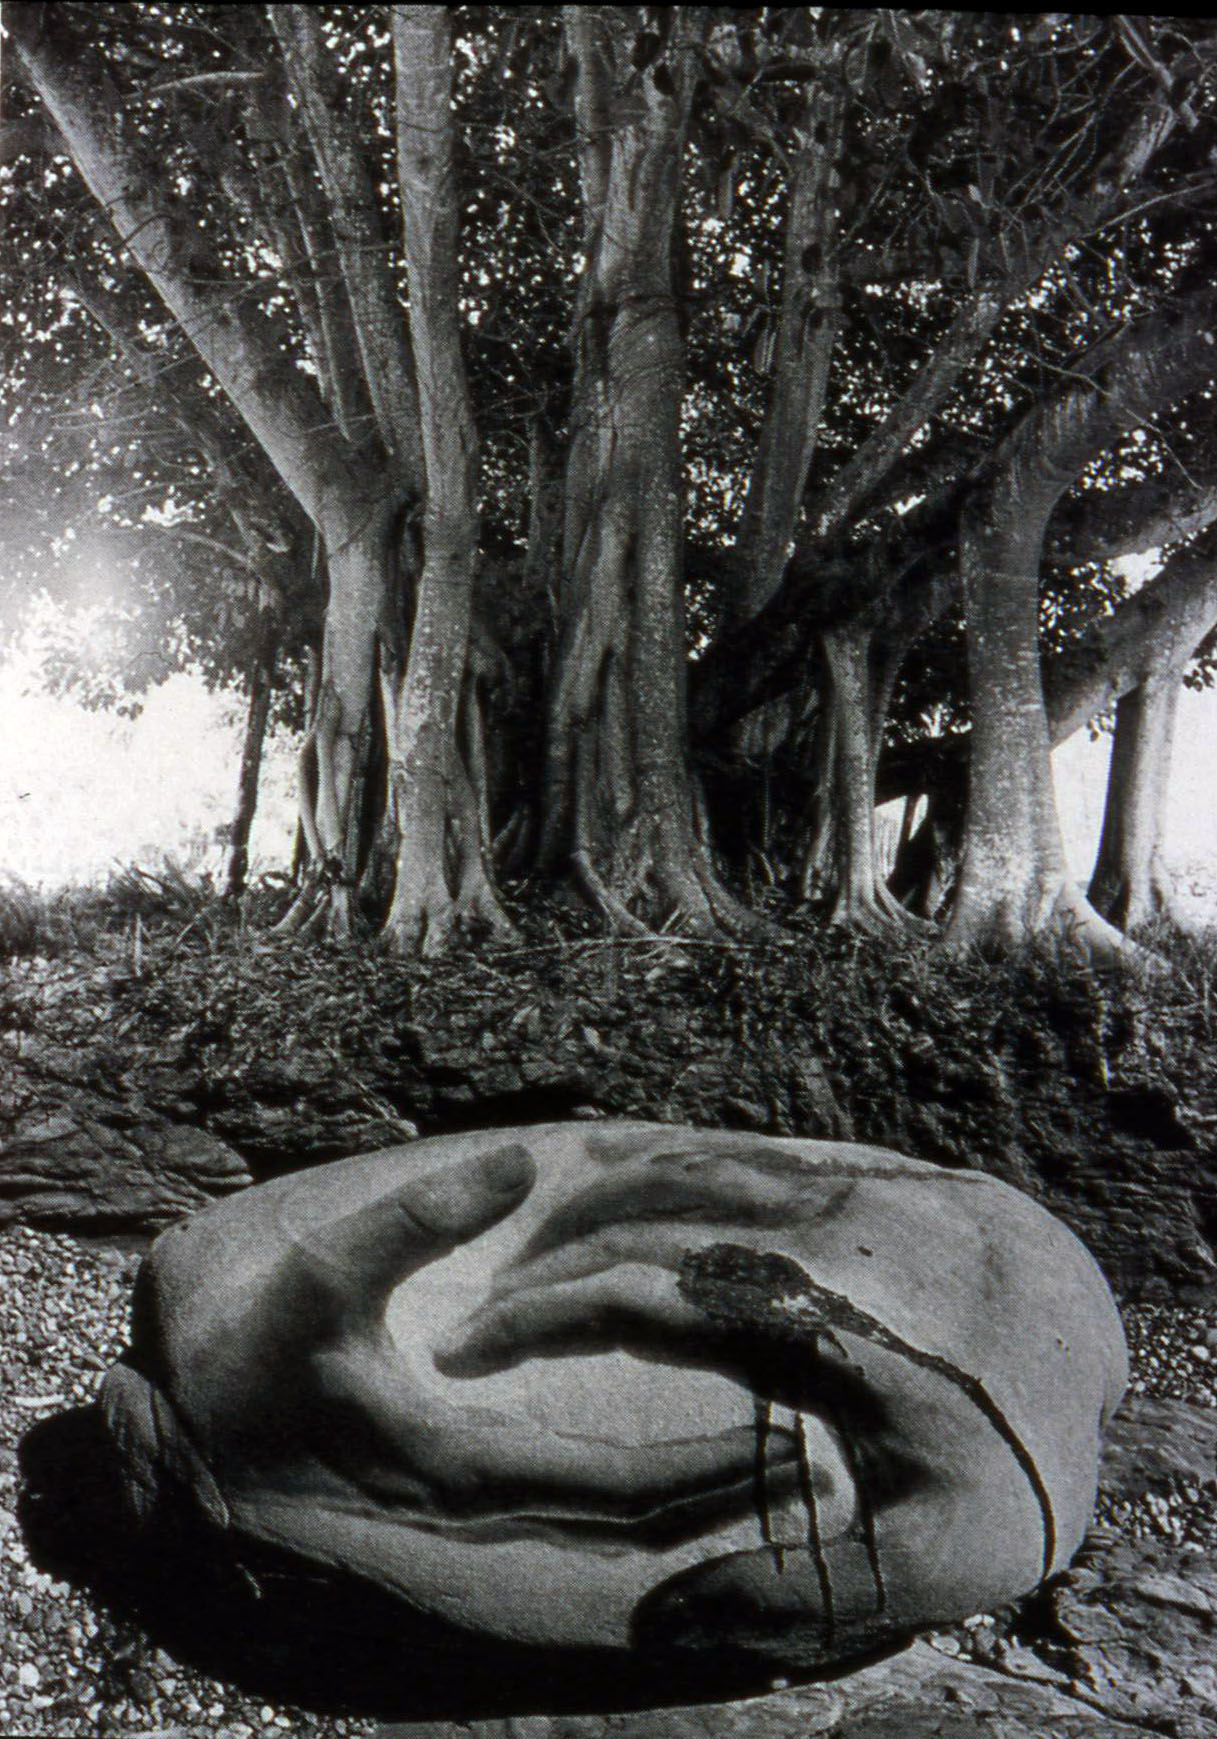 Jerry Uelsmann Untitled Rock Hands Banyan Tree Catherine Couturier Gallery